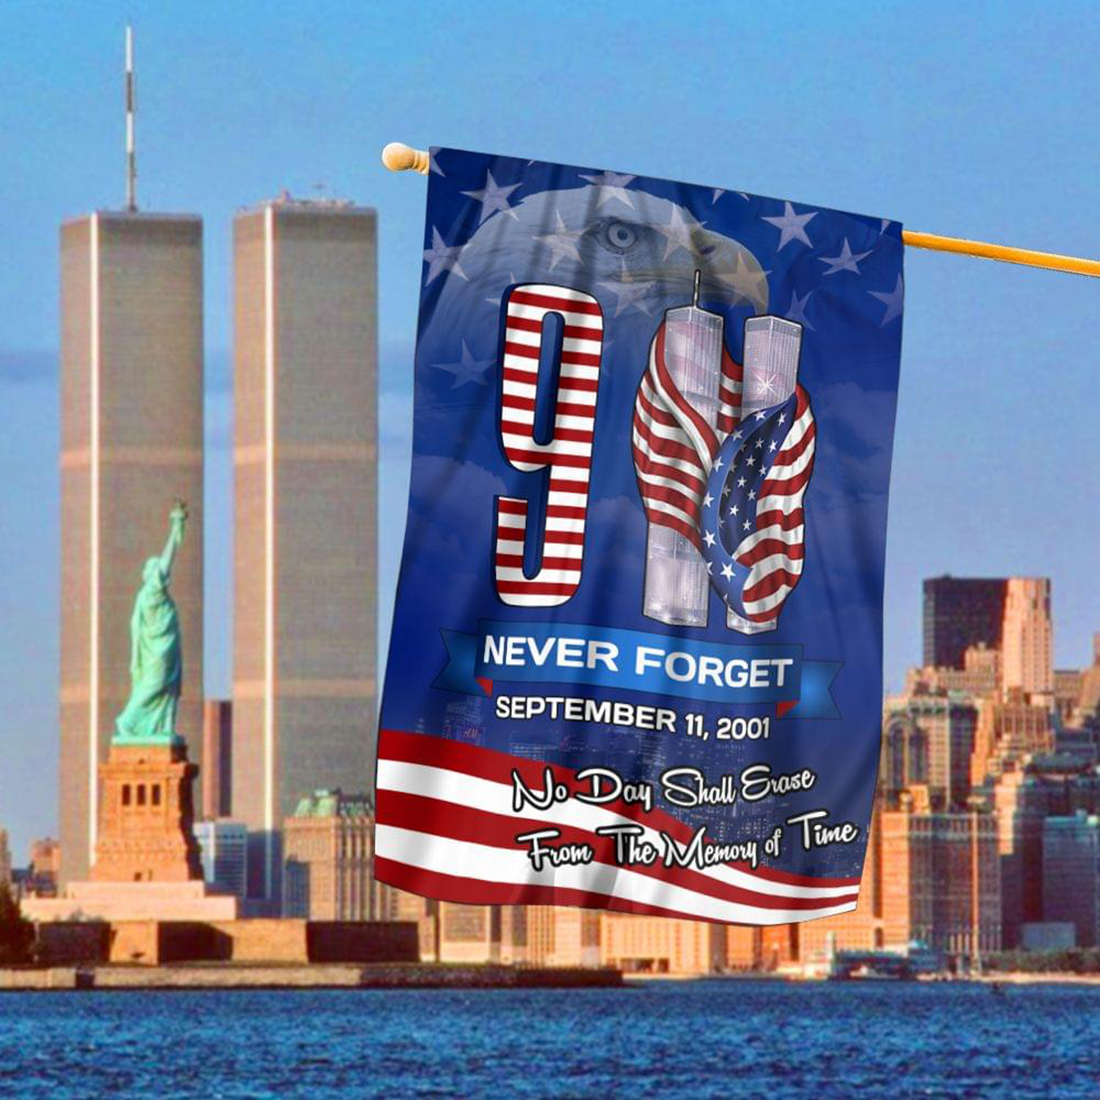 Never forget September 11 2001 No day shall erase from the memory of time flag